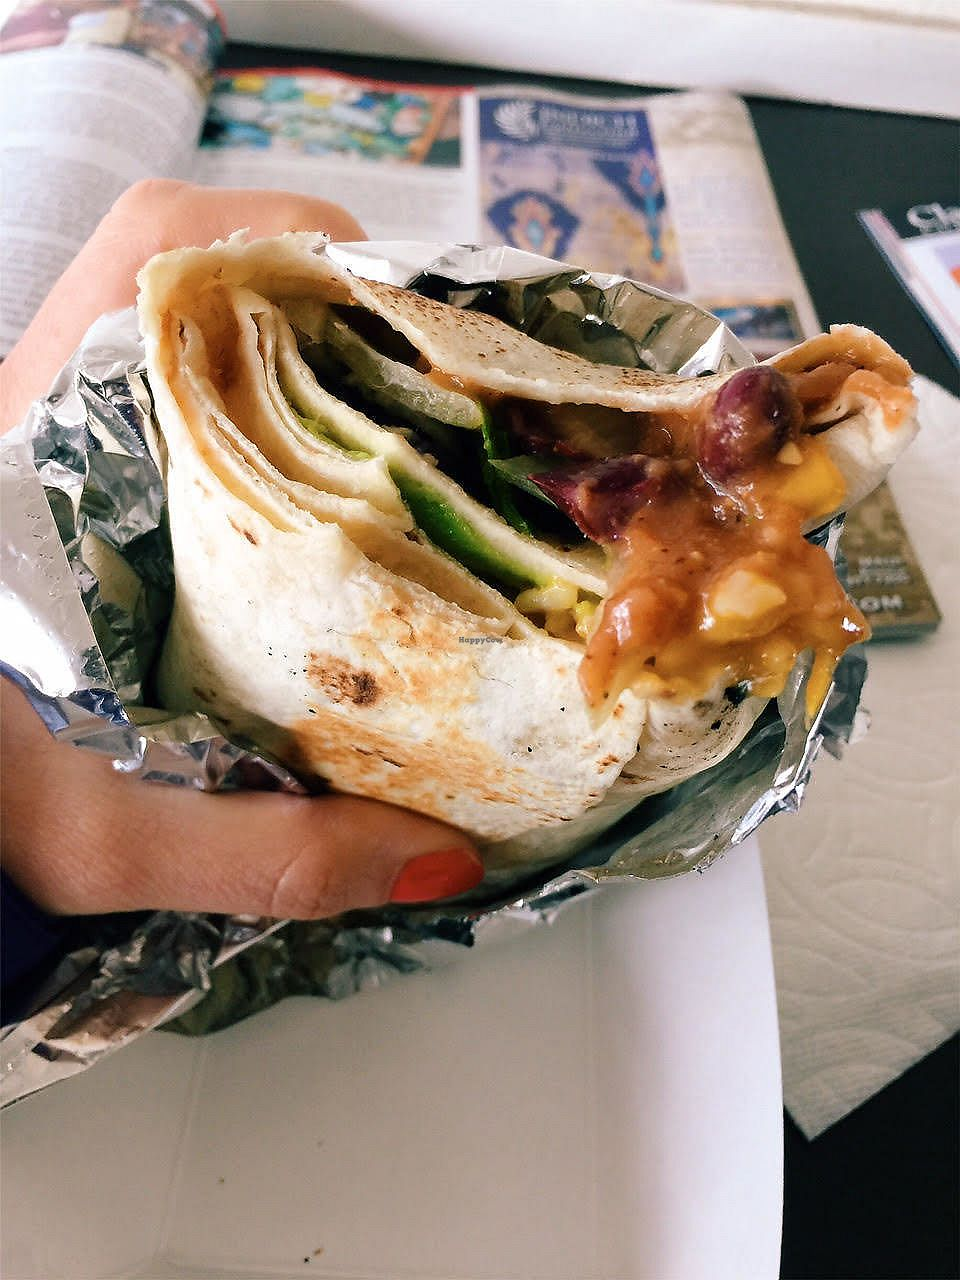 """Photo of Loko Wraps  by <a href=""""/members/profile/Stephaneen"""">Stephaneen</a> <br/>three bean burrito with vegan cheese <br/> March 21, 2018  - <a href='/contact/abuse/image/84905/373534'>Report</a>"""